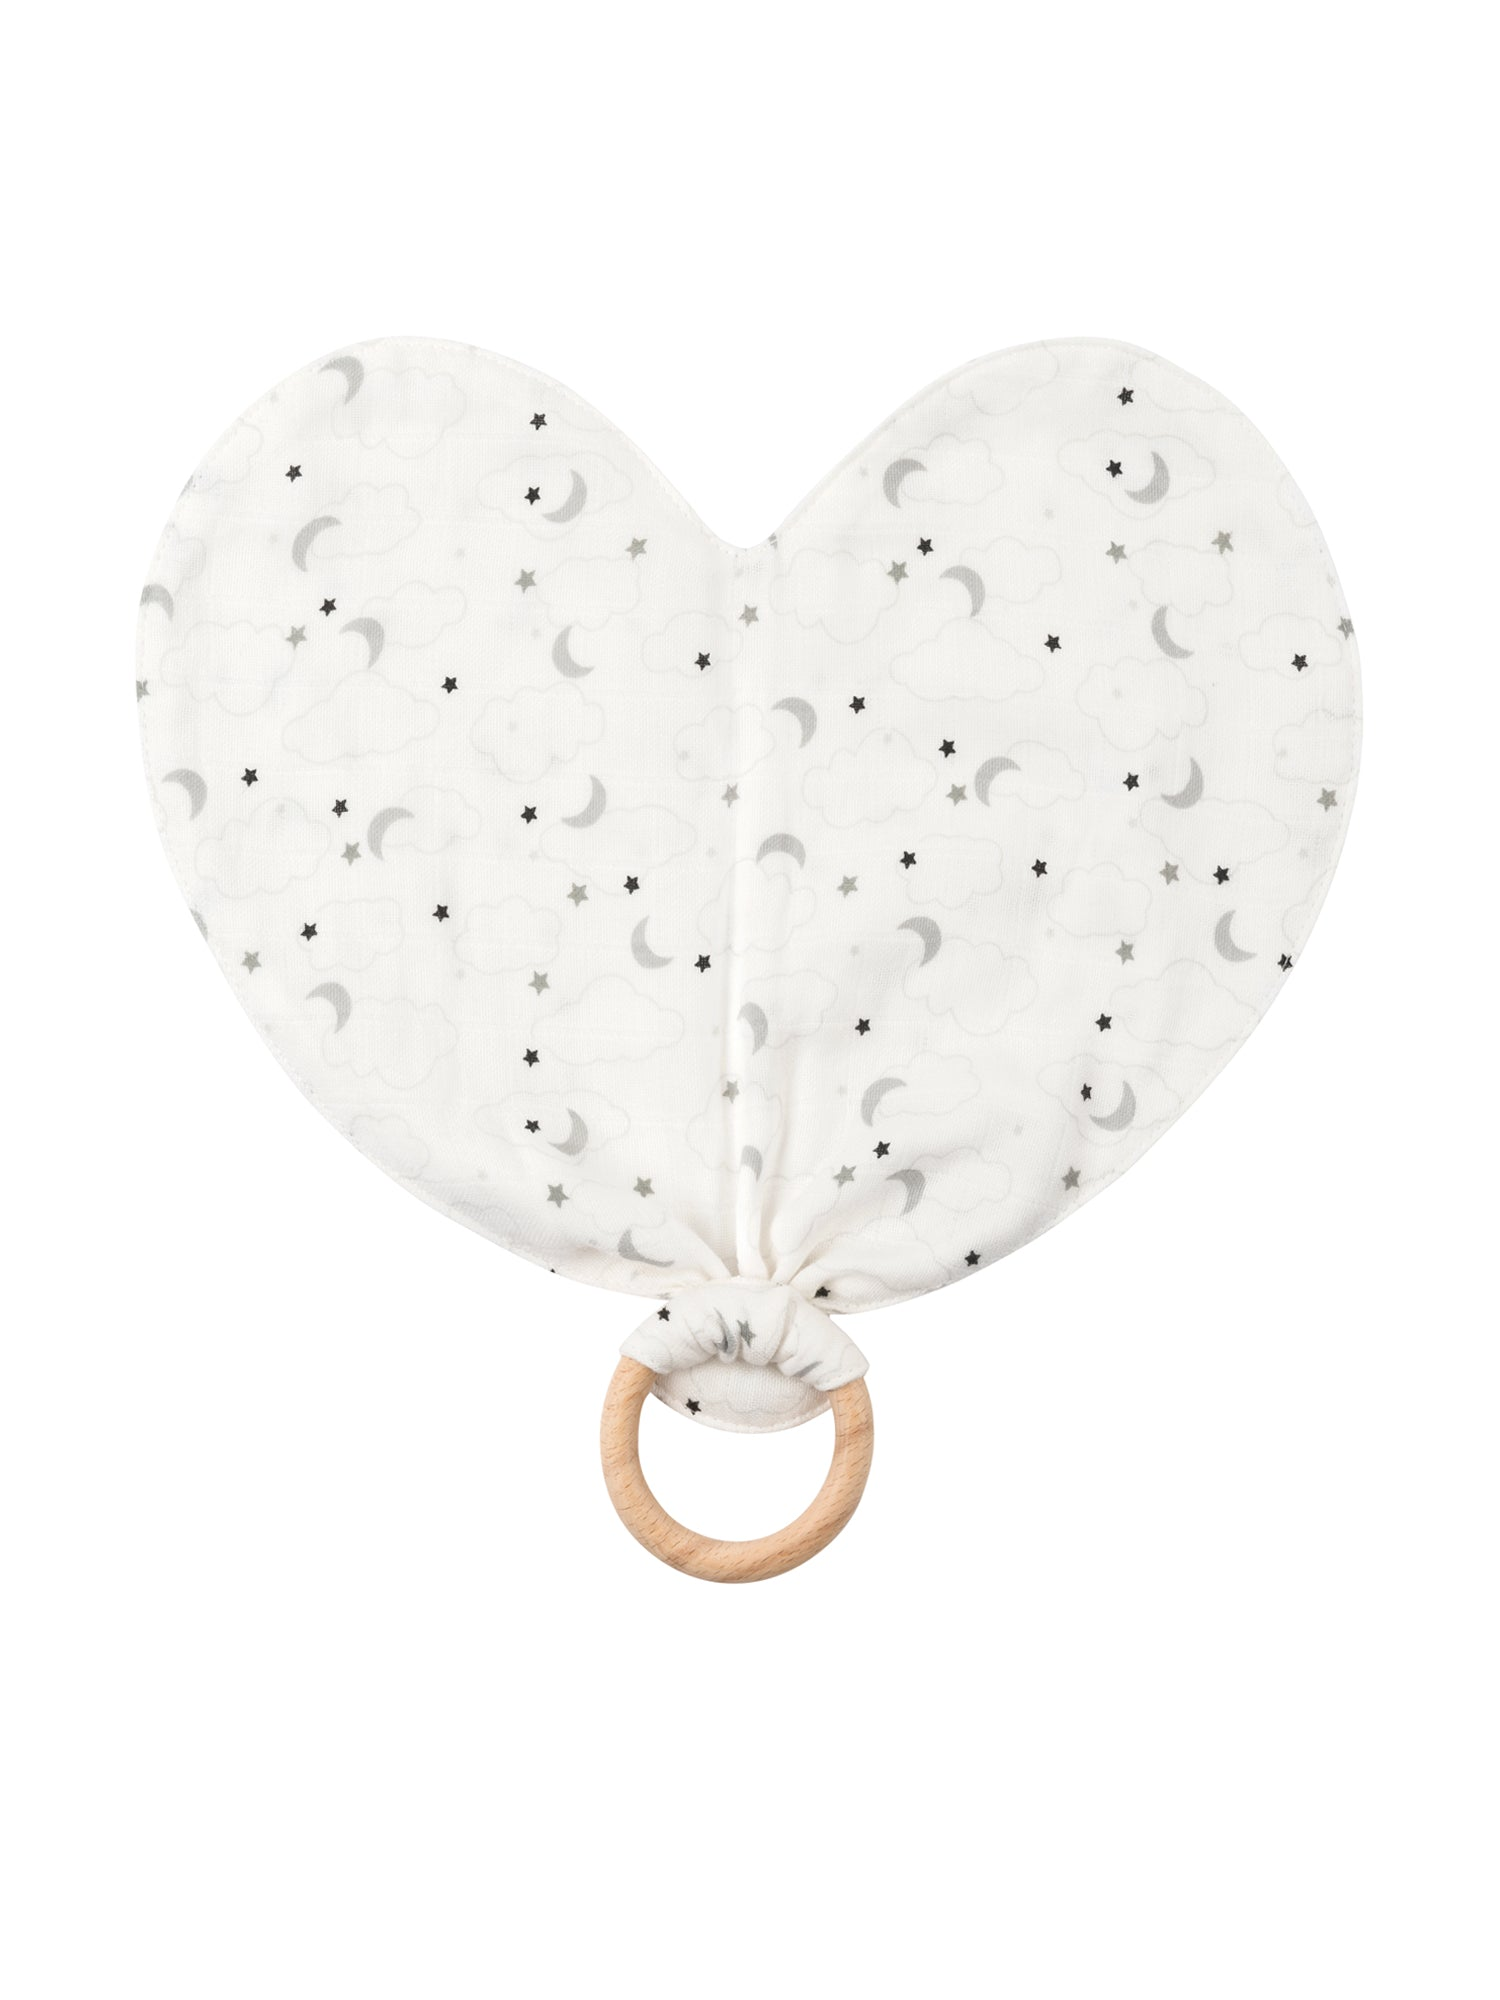 Heart Lovey Teething Toy - Grey Muslin Starry Night at 15% off